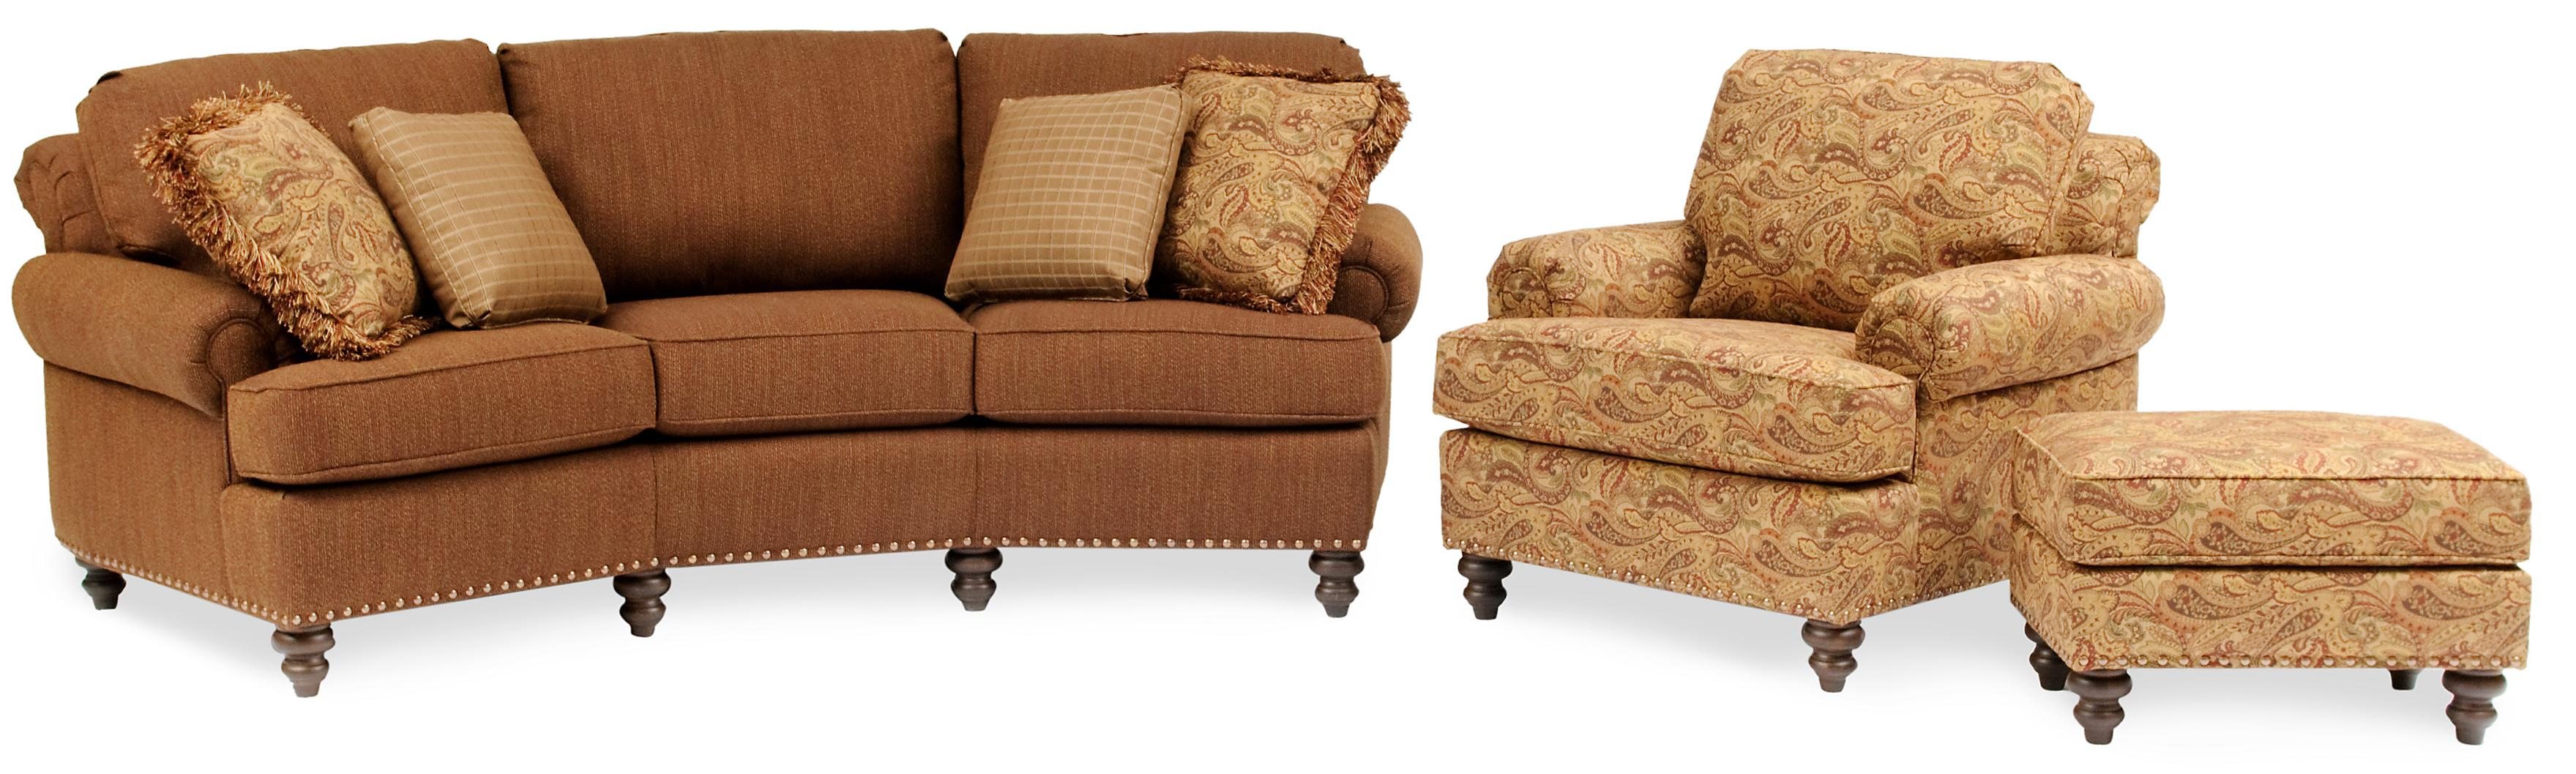 Curved Conversational Sofa With Nailhead Trim. By Smith Brothers